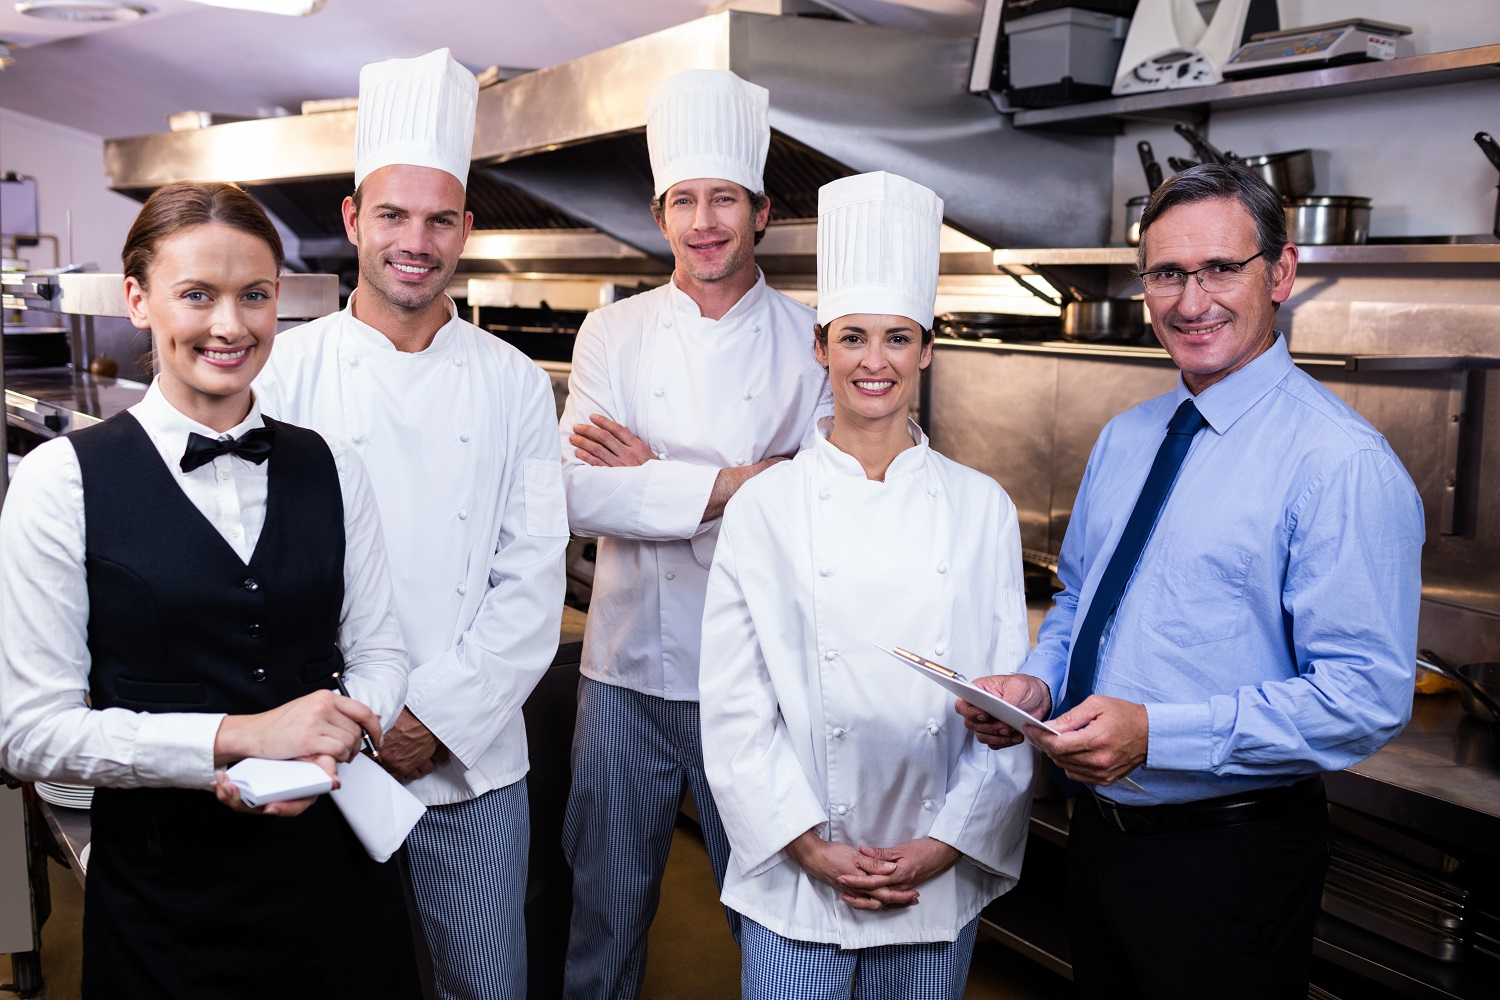 What Are The Main Restaurant Service Providers?